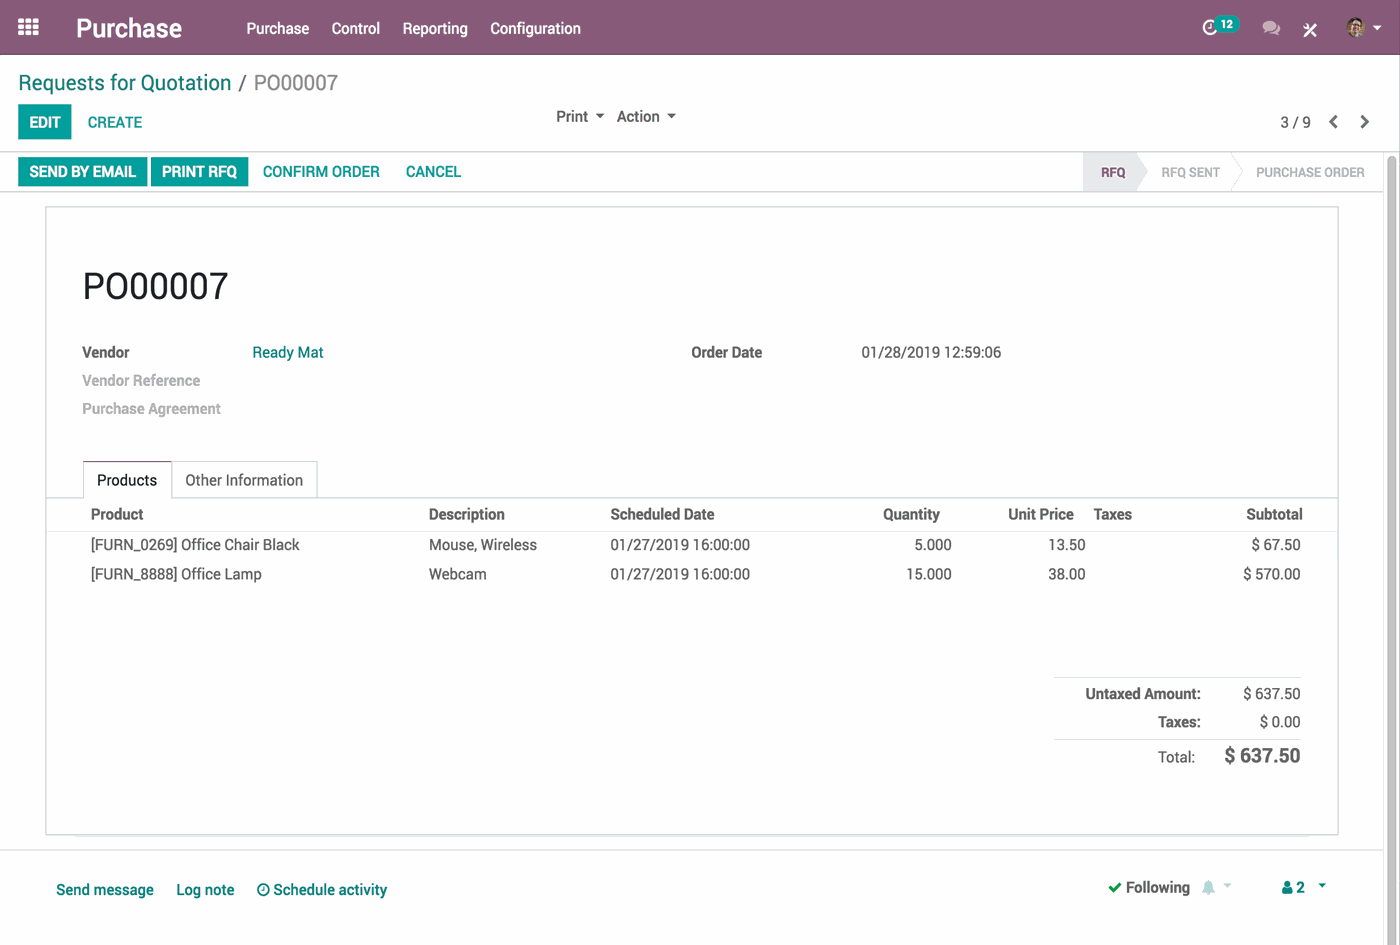 odoo purchase - Purchase APP